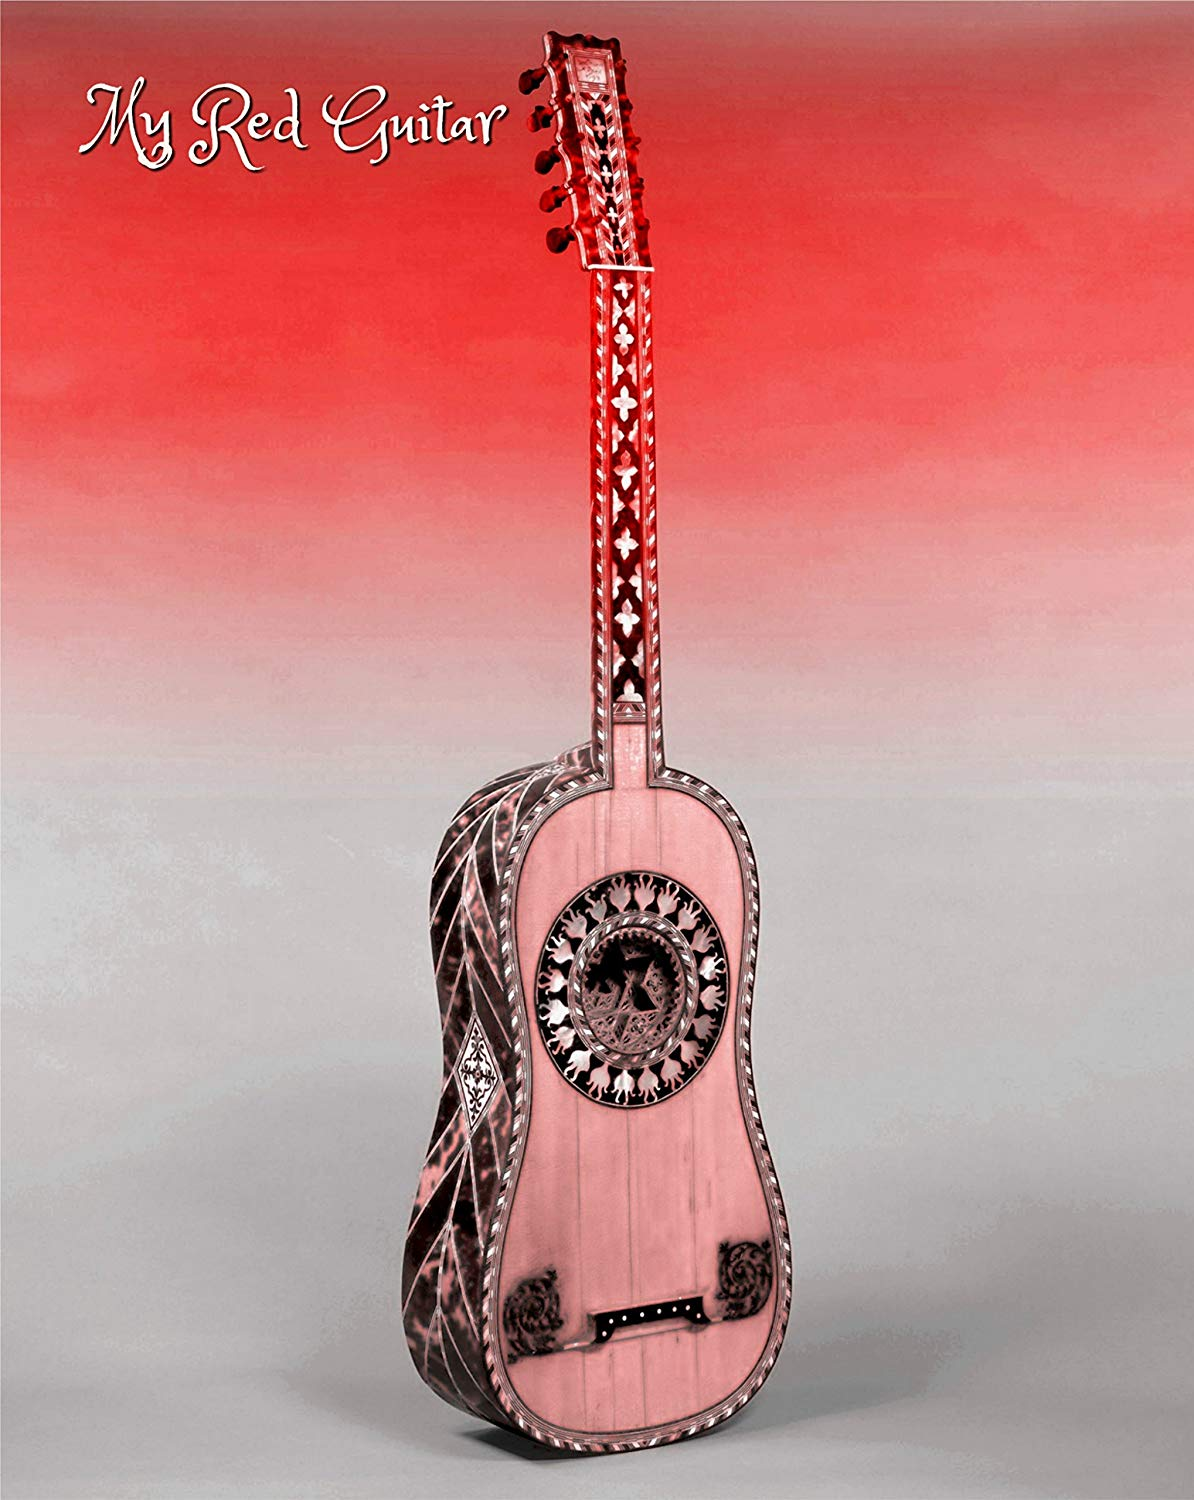 My Red Guitar, Classical Guitar, Acoustic, Red, White, Museum Quality Poster Print